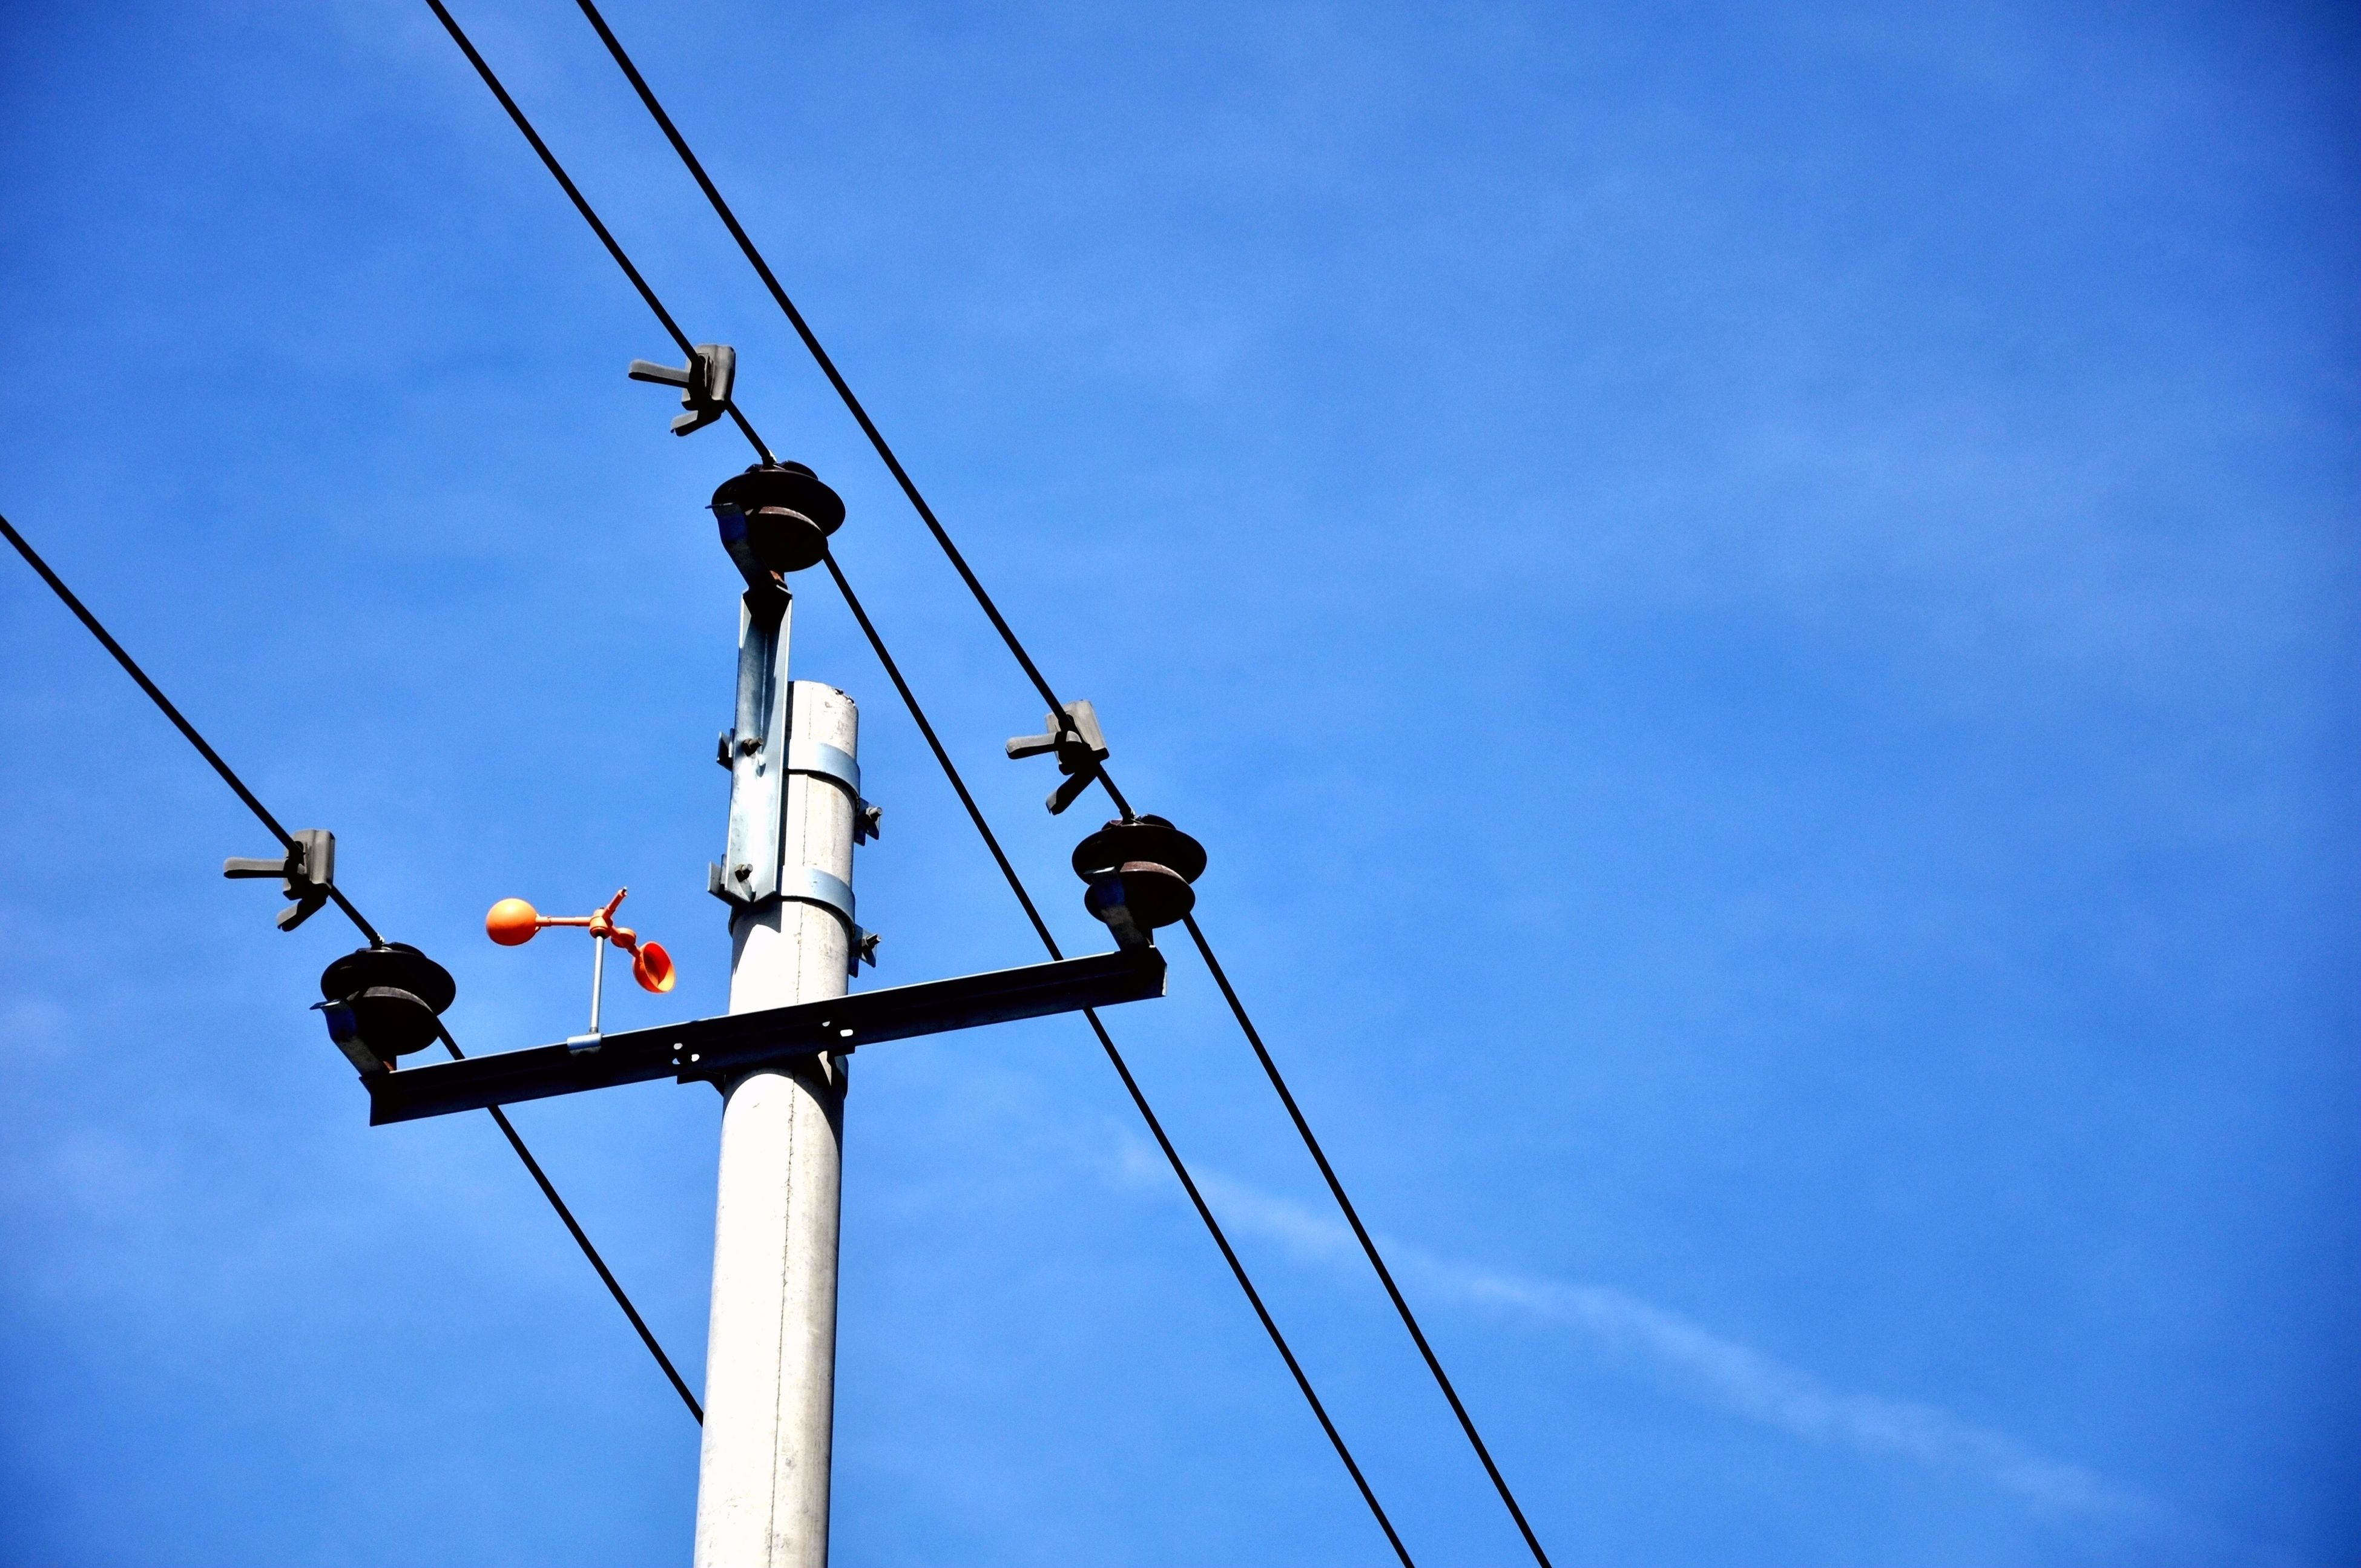 low angle view, blue, street light, electricity, lighting equipment, clear sky, power line, pole, cable, sky, technology, communication, power supply, guidance, electricity pylon, connection, road signal, fuel and power generation, day, outdoors